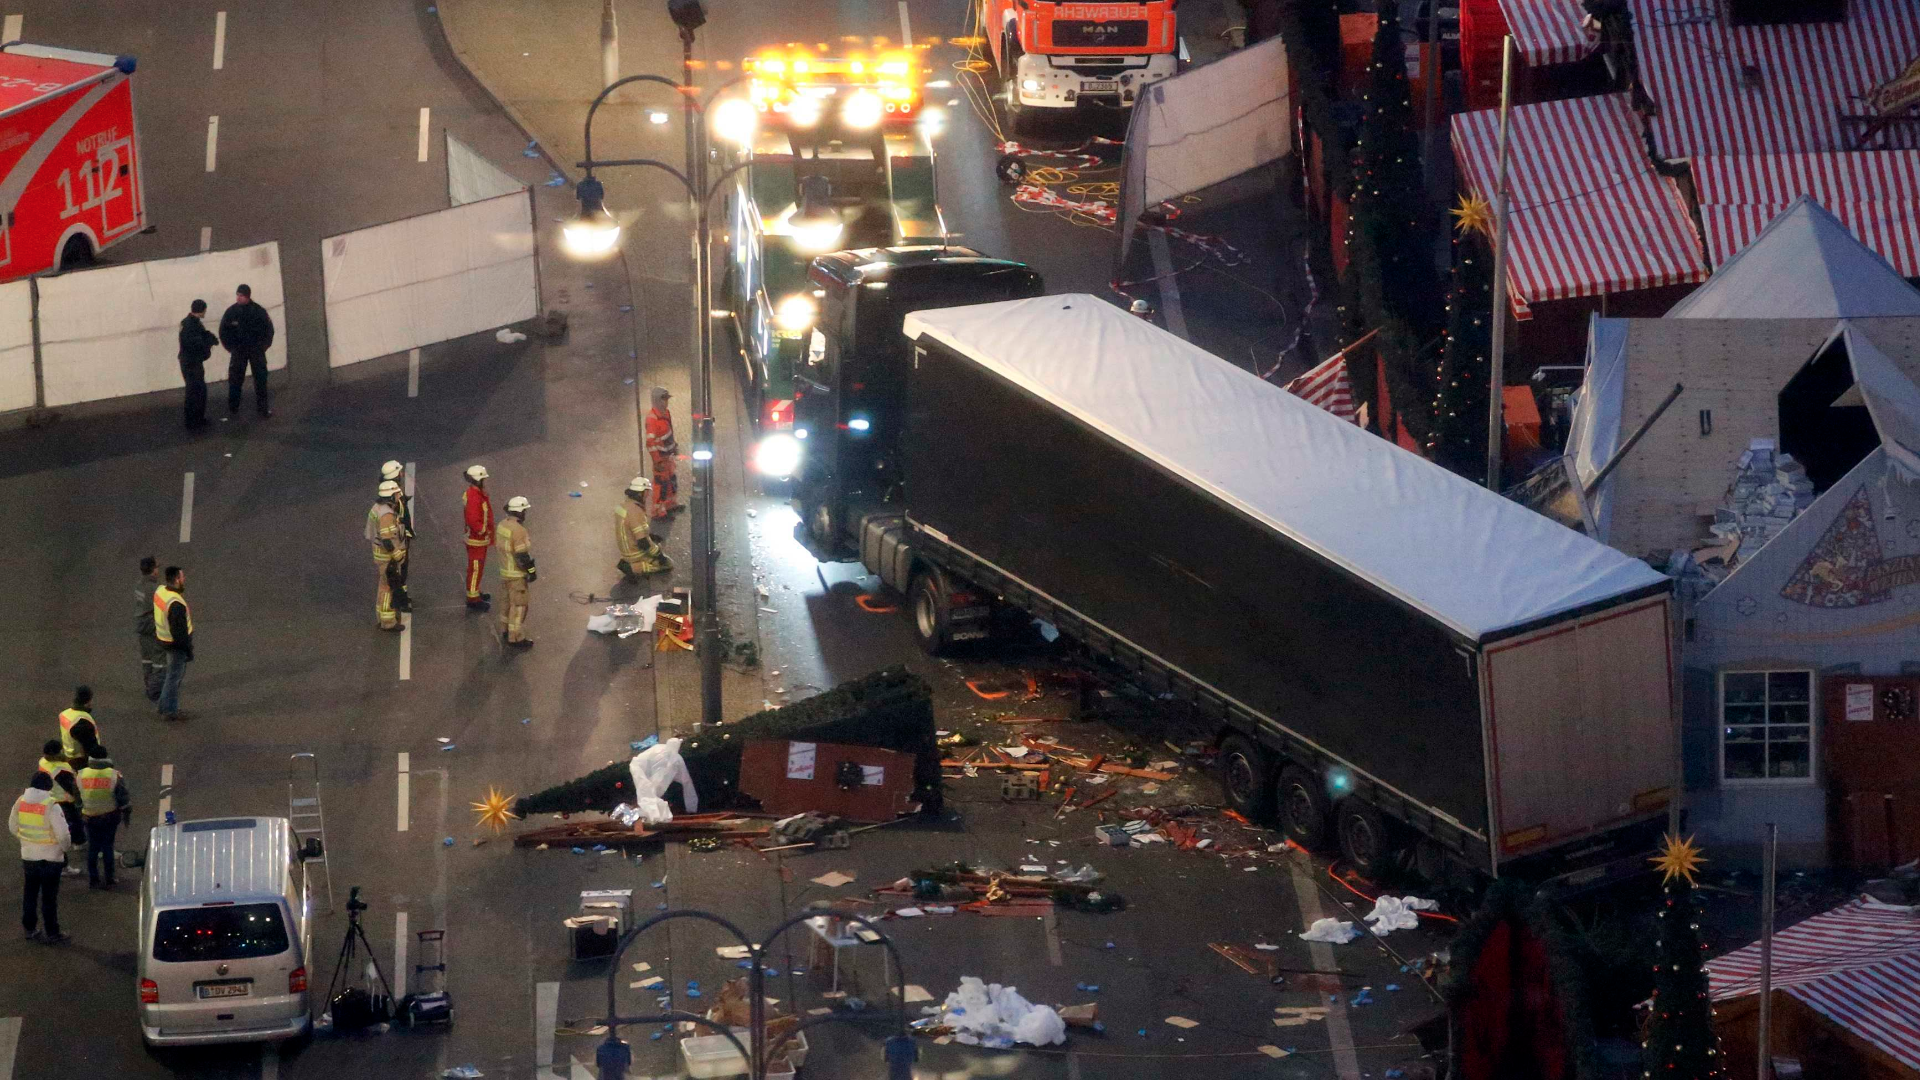 Truck attack may be part of ISIS strategy to sharpen divide between Muslims and others